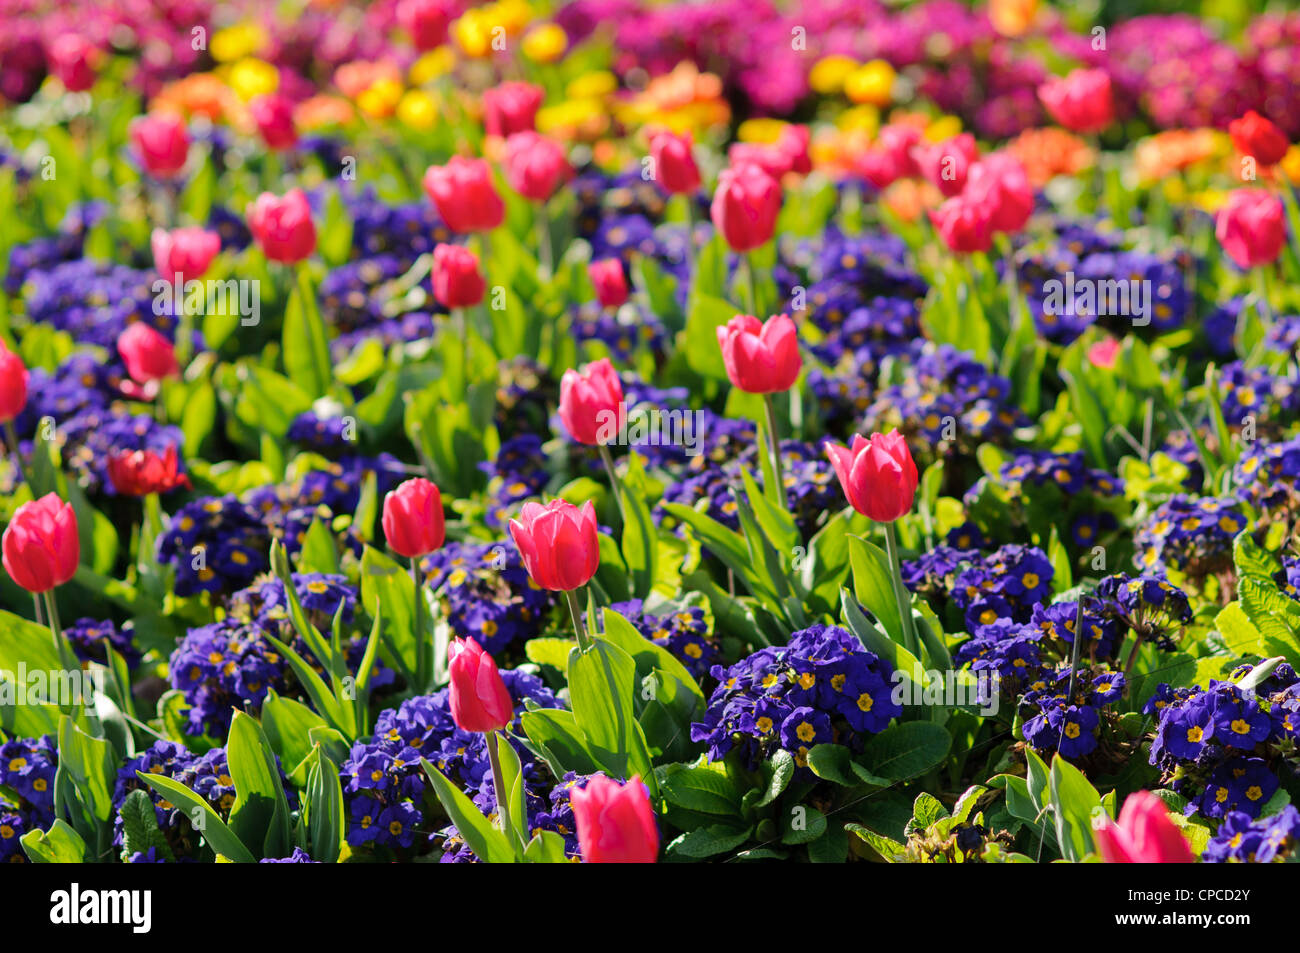 Spring Flowers In St James Park London Stock Photo 48216867 Alamy